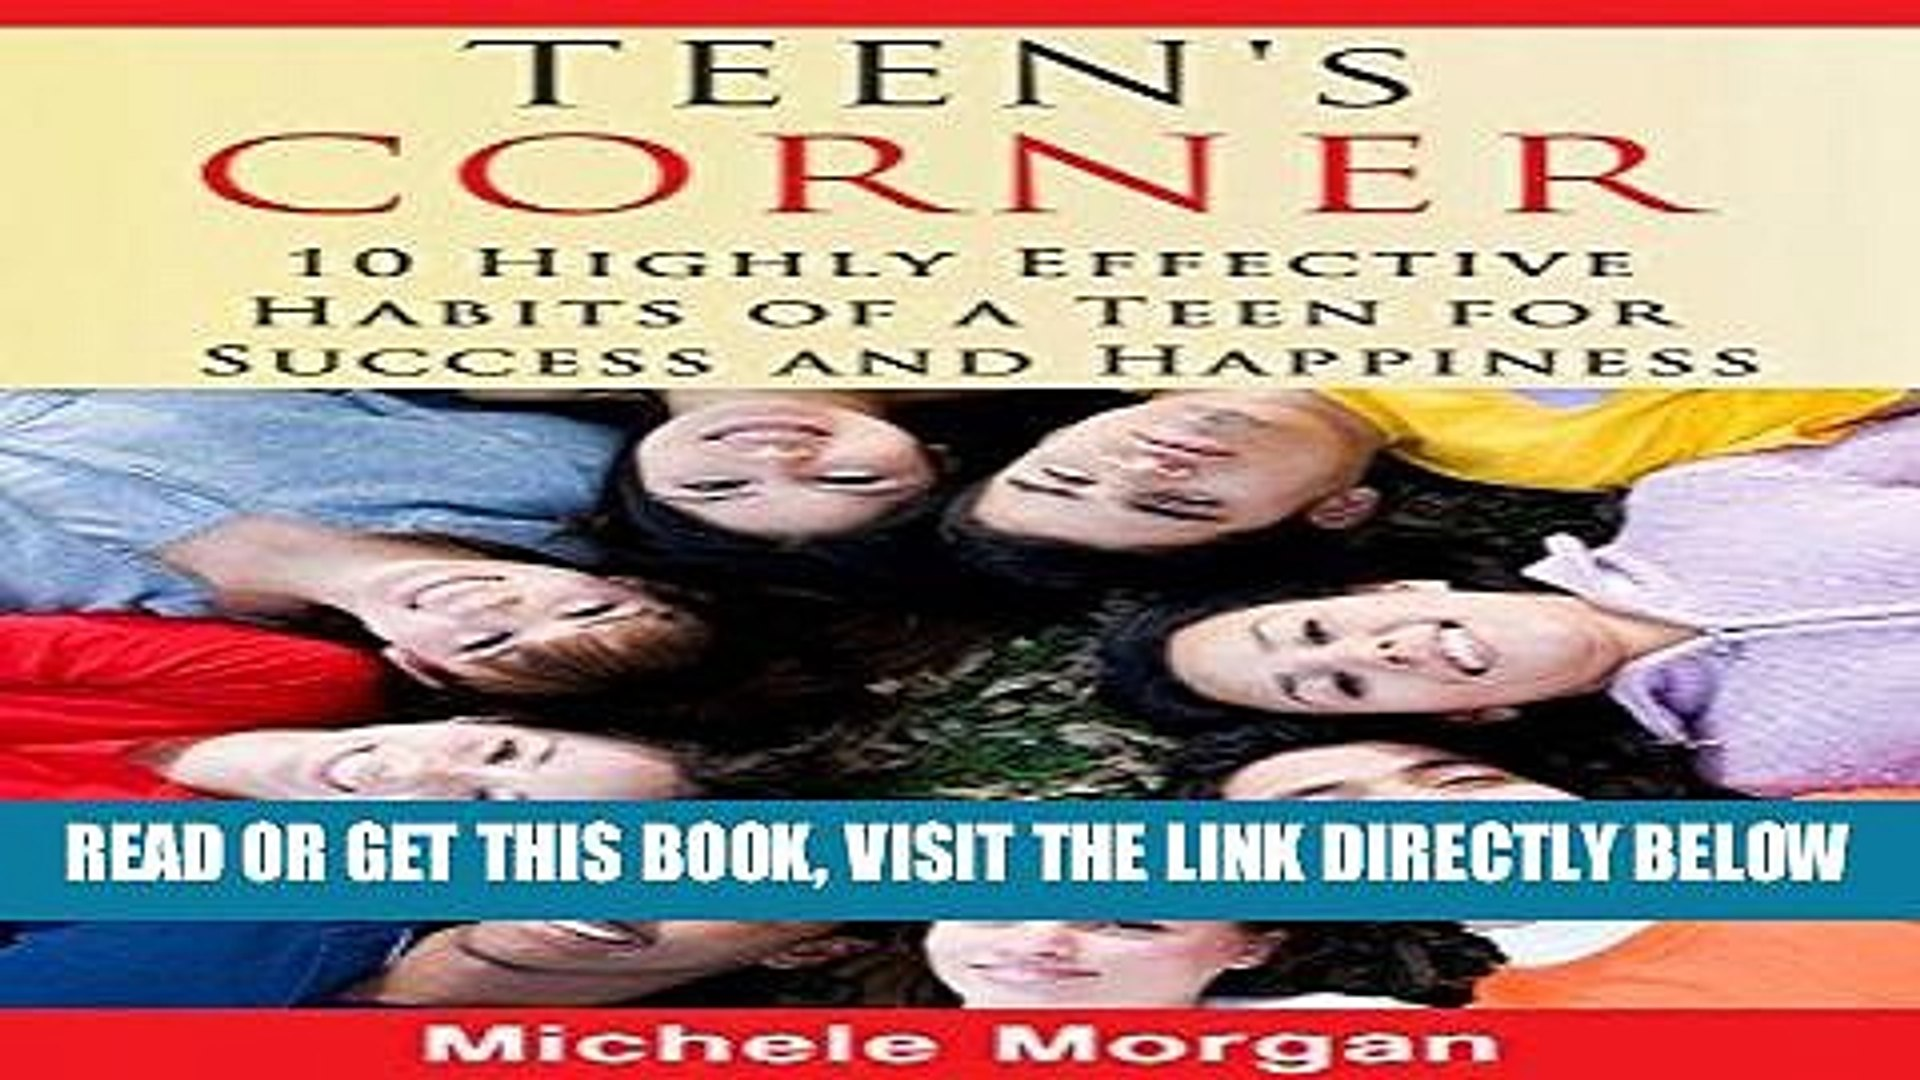 Read Now TEEN S CORNER: 10 Highly Effective Habits of a Teen for Success and Happiness (Teen